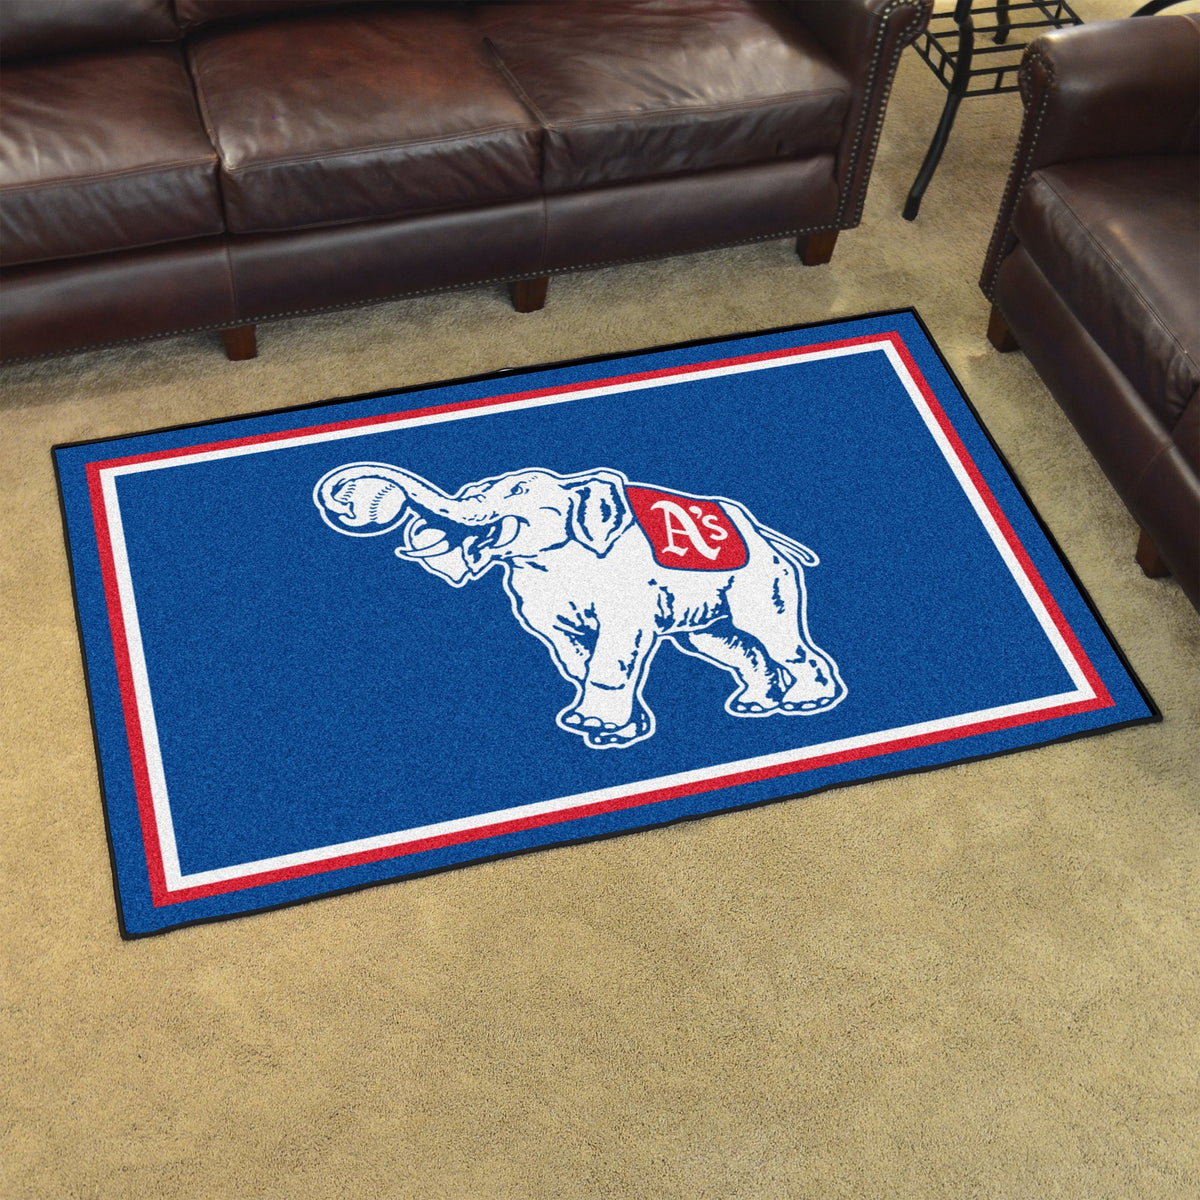 MLB Retro - 4' x 6' Rug MLB Retro Mats, Plush Rugs, 4x6 Rug, MLB, Home Fan Mats Philadelphia Athletics